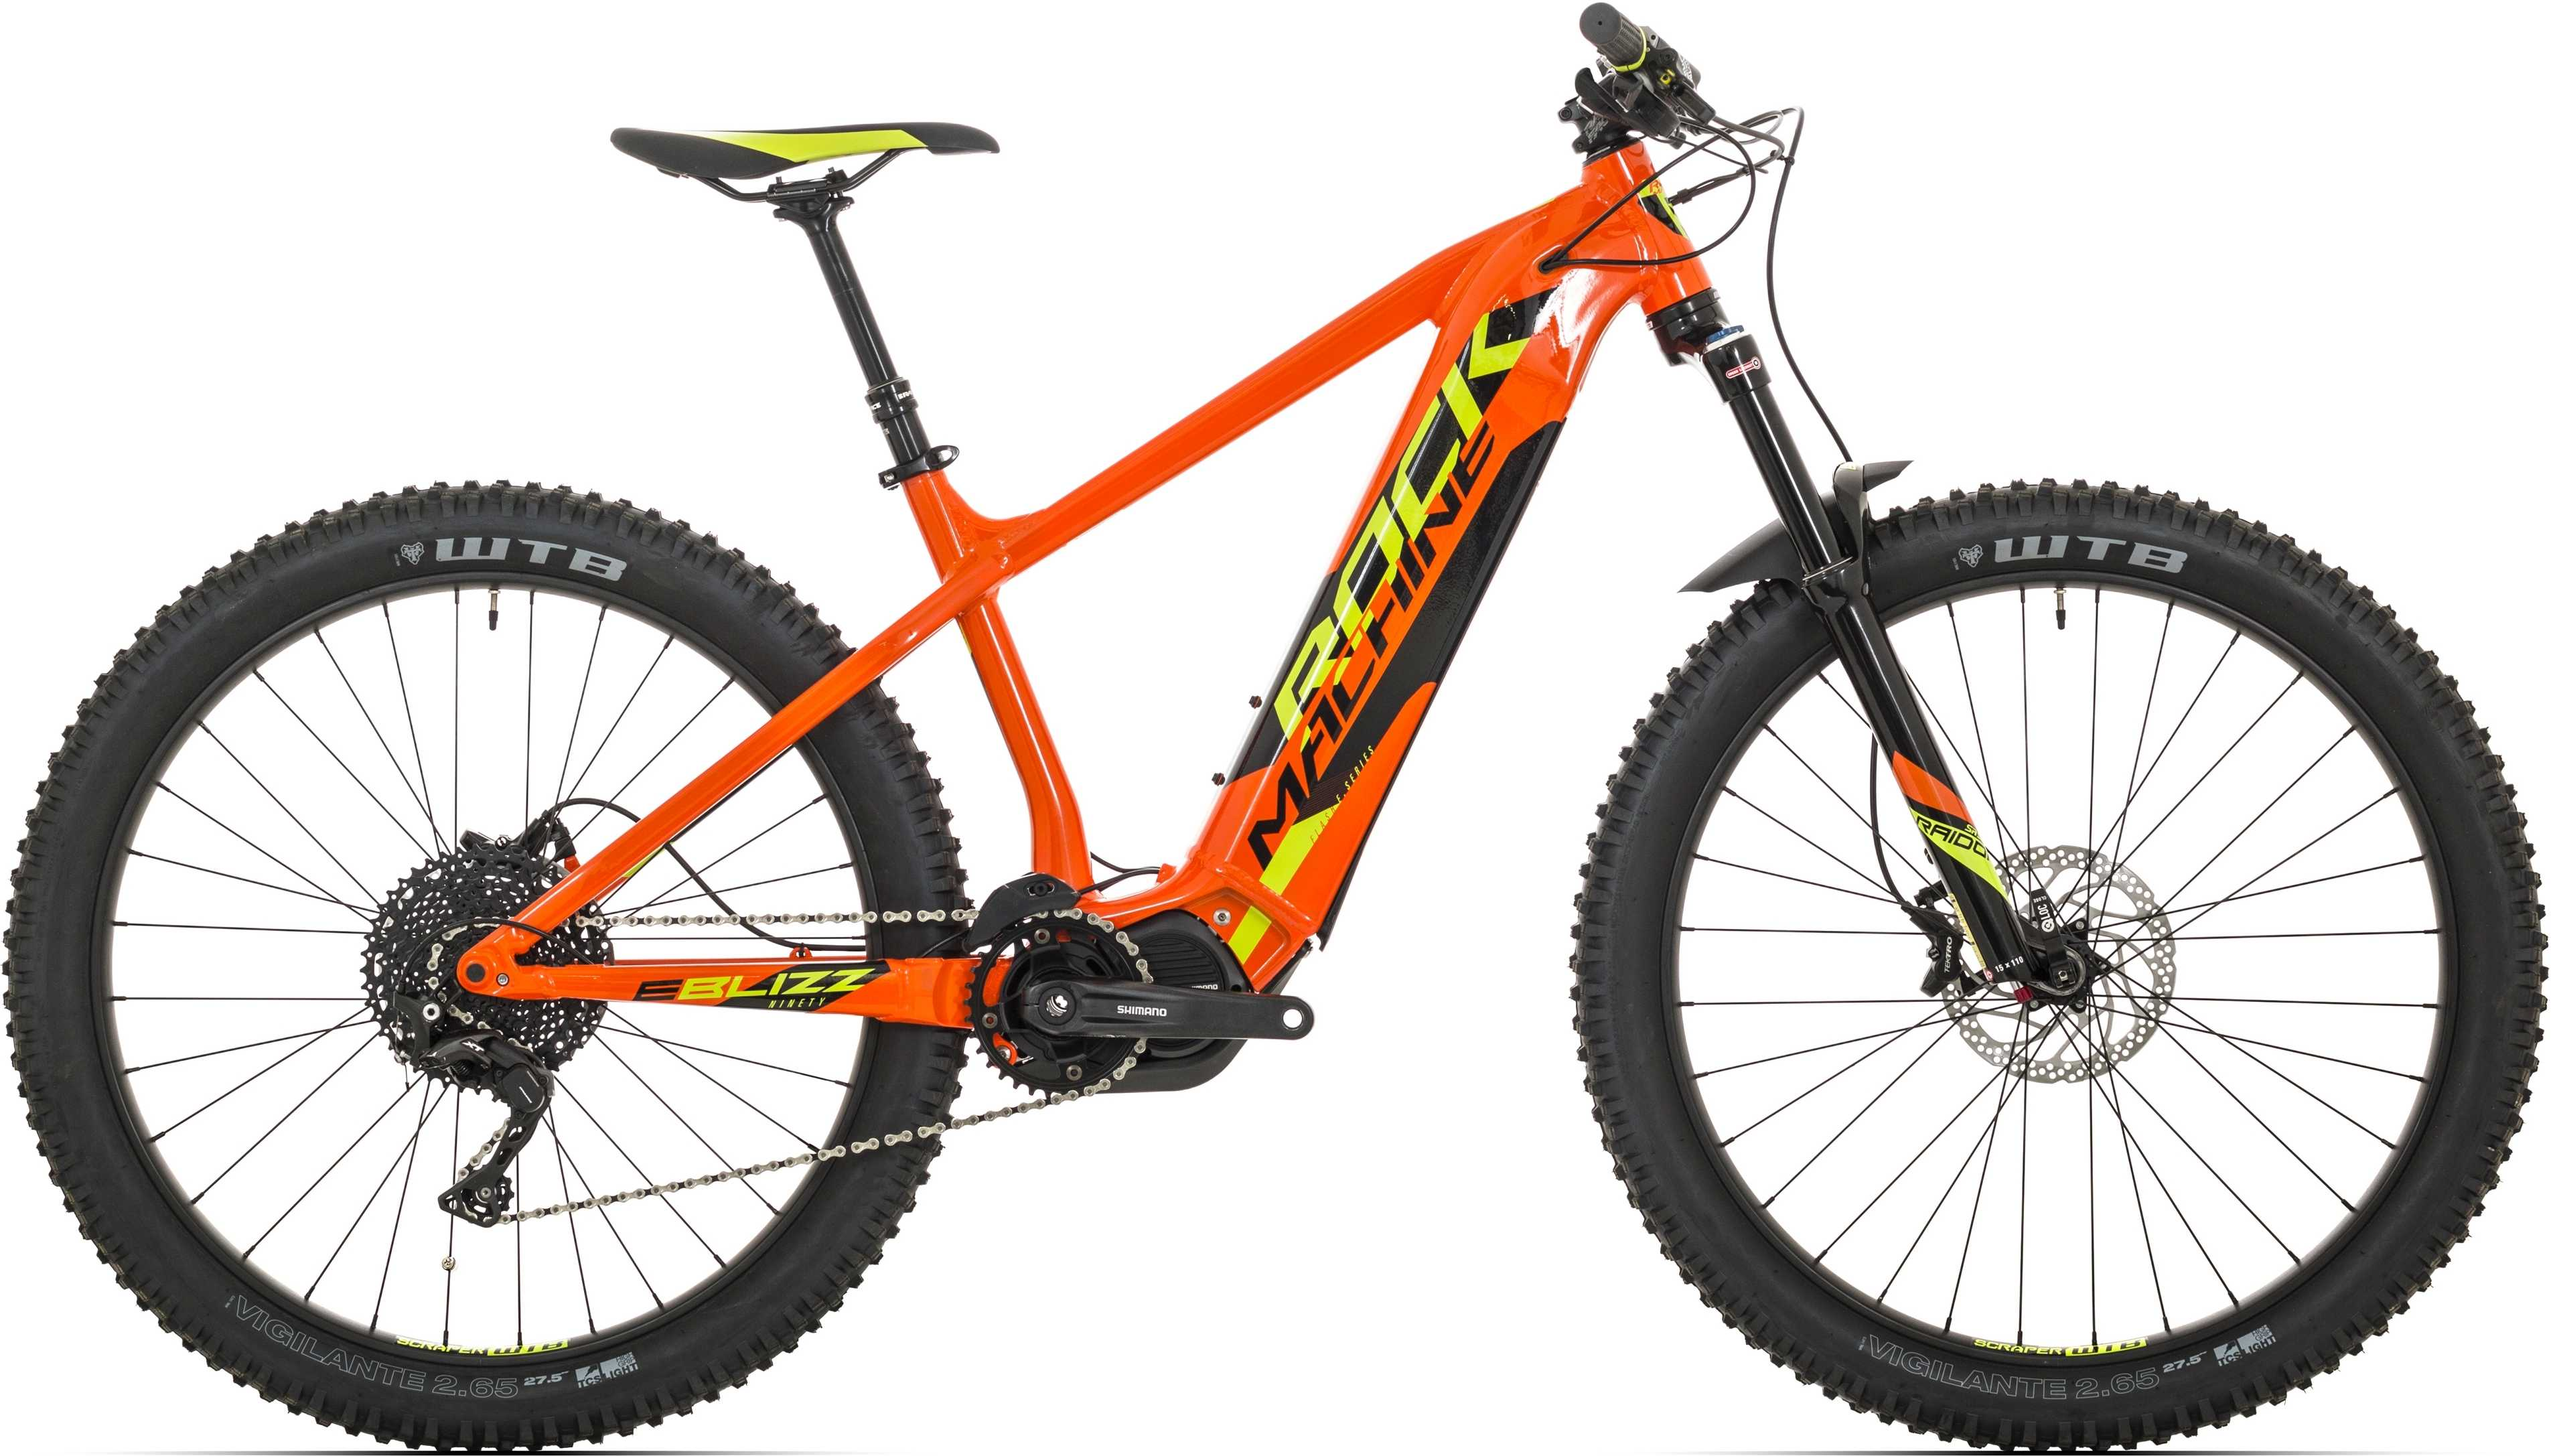 Rock Machine Blizz Int E90-27+ blankorange/gul/svart medium